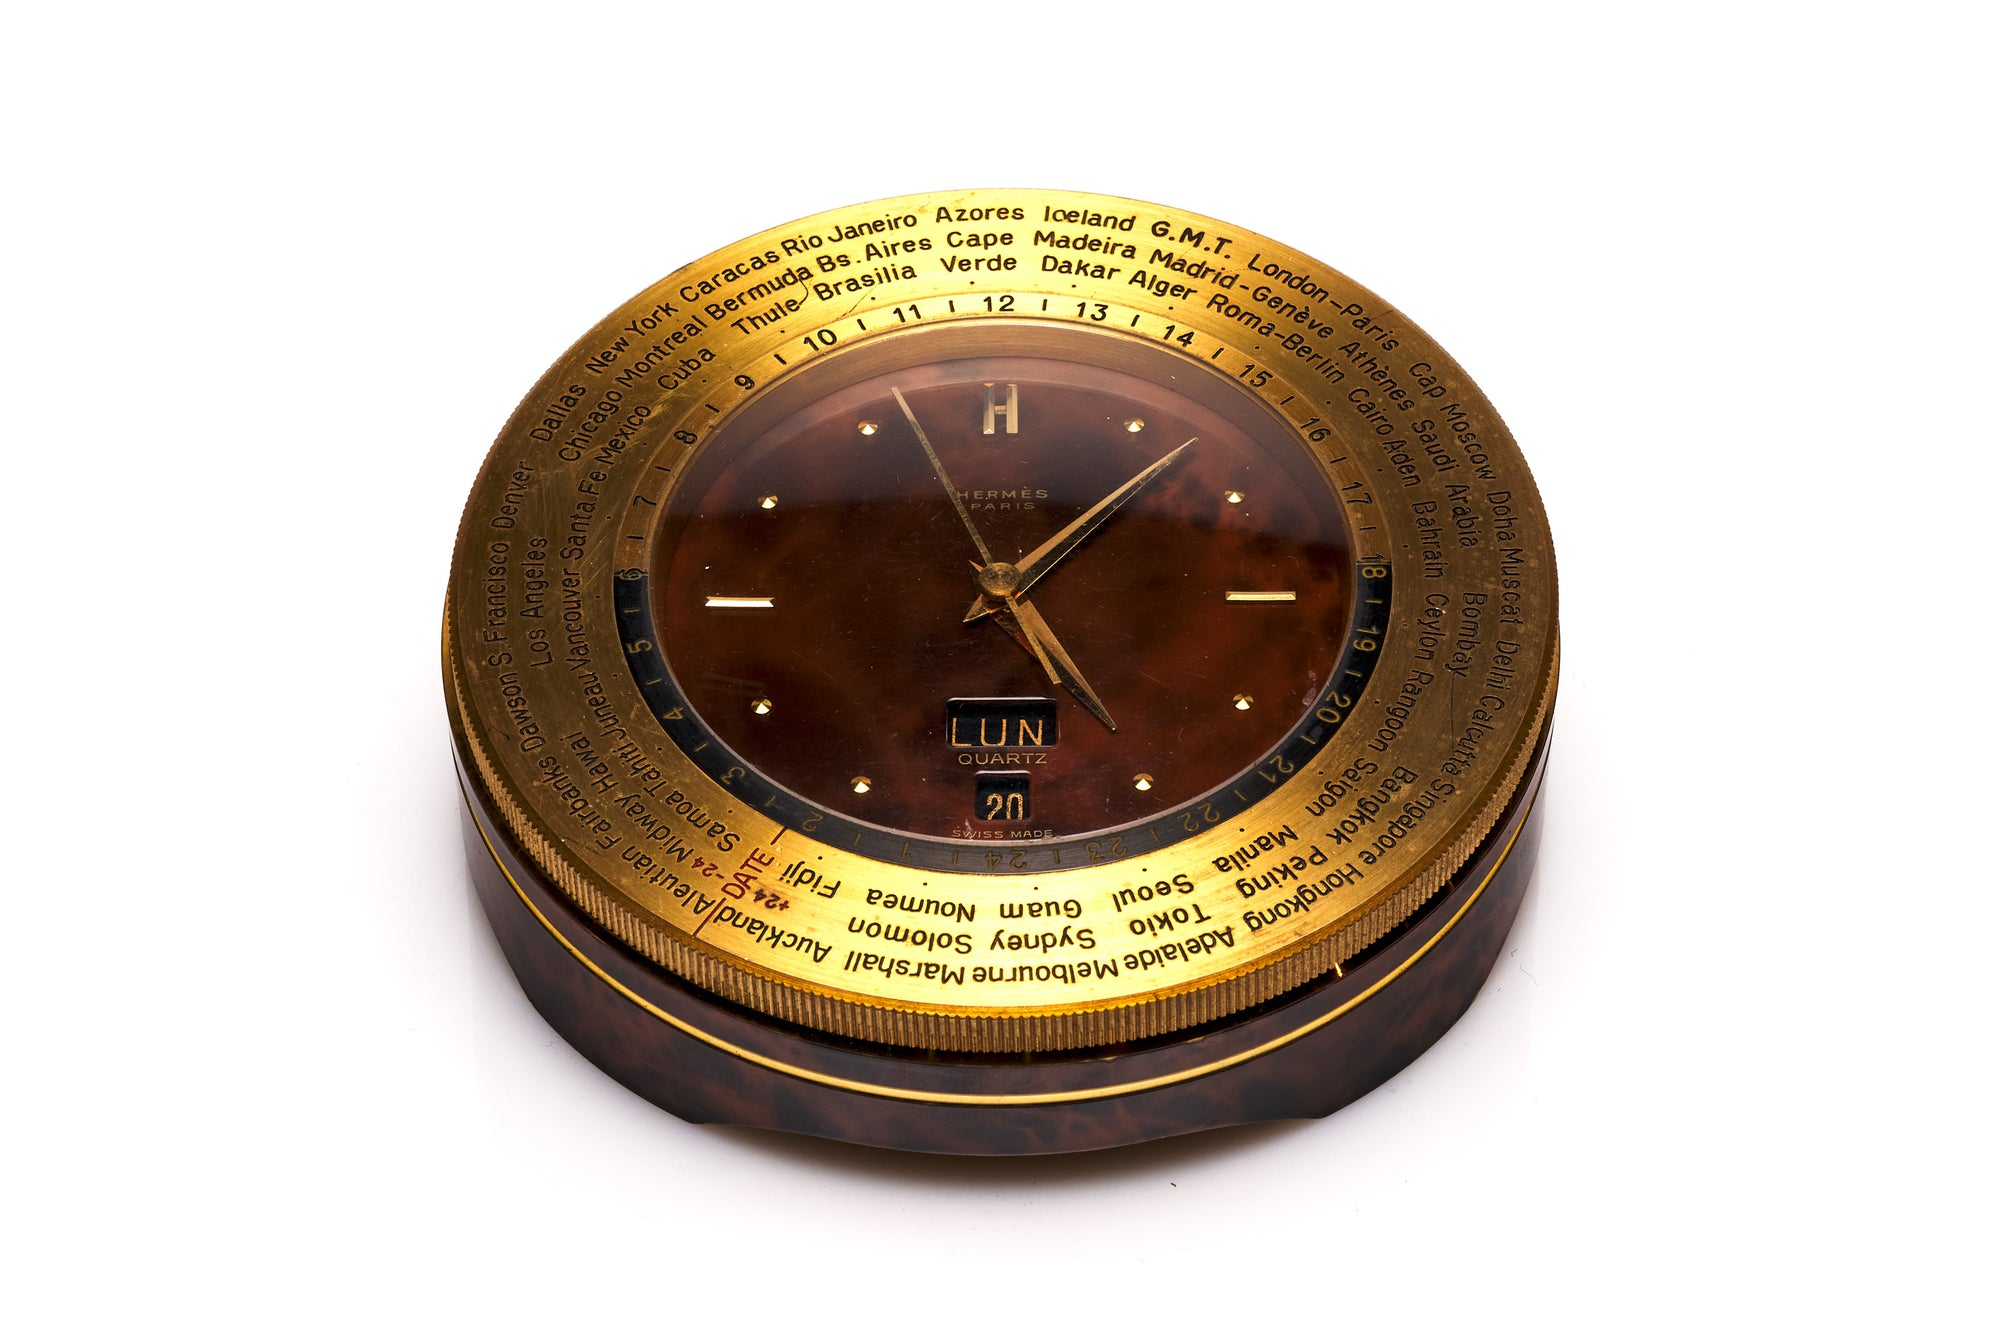 Hermes World Time Clock